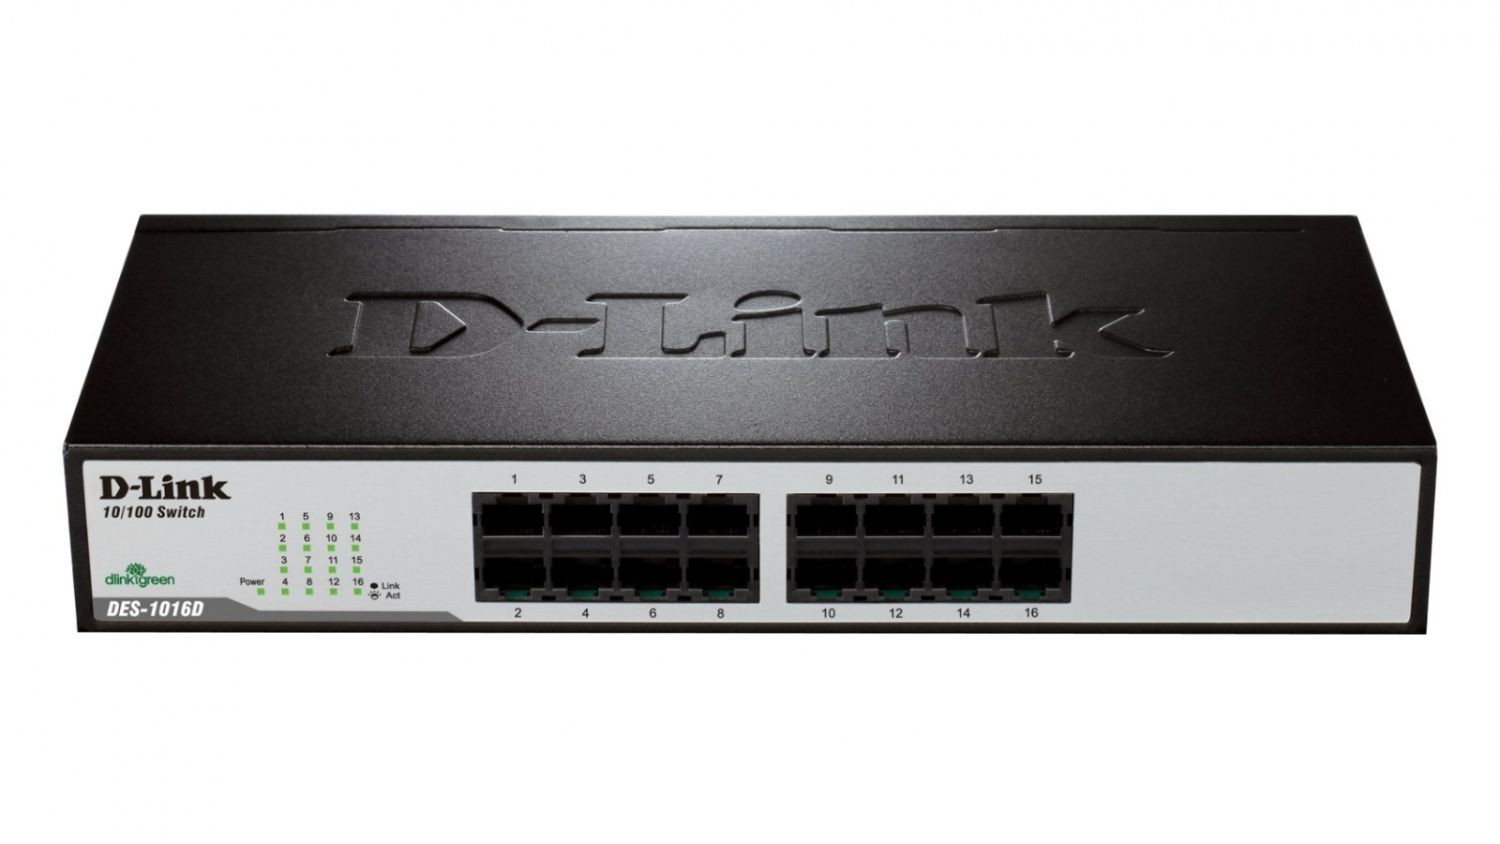 D-Link Express EtherNetwork Desktop Switch 16x10/100